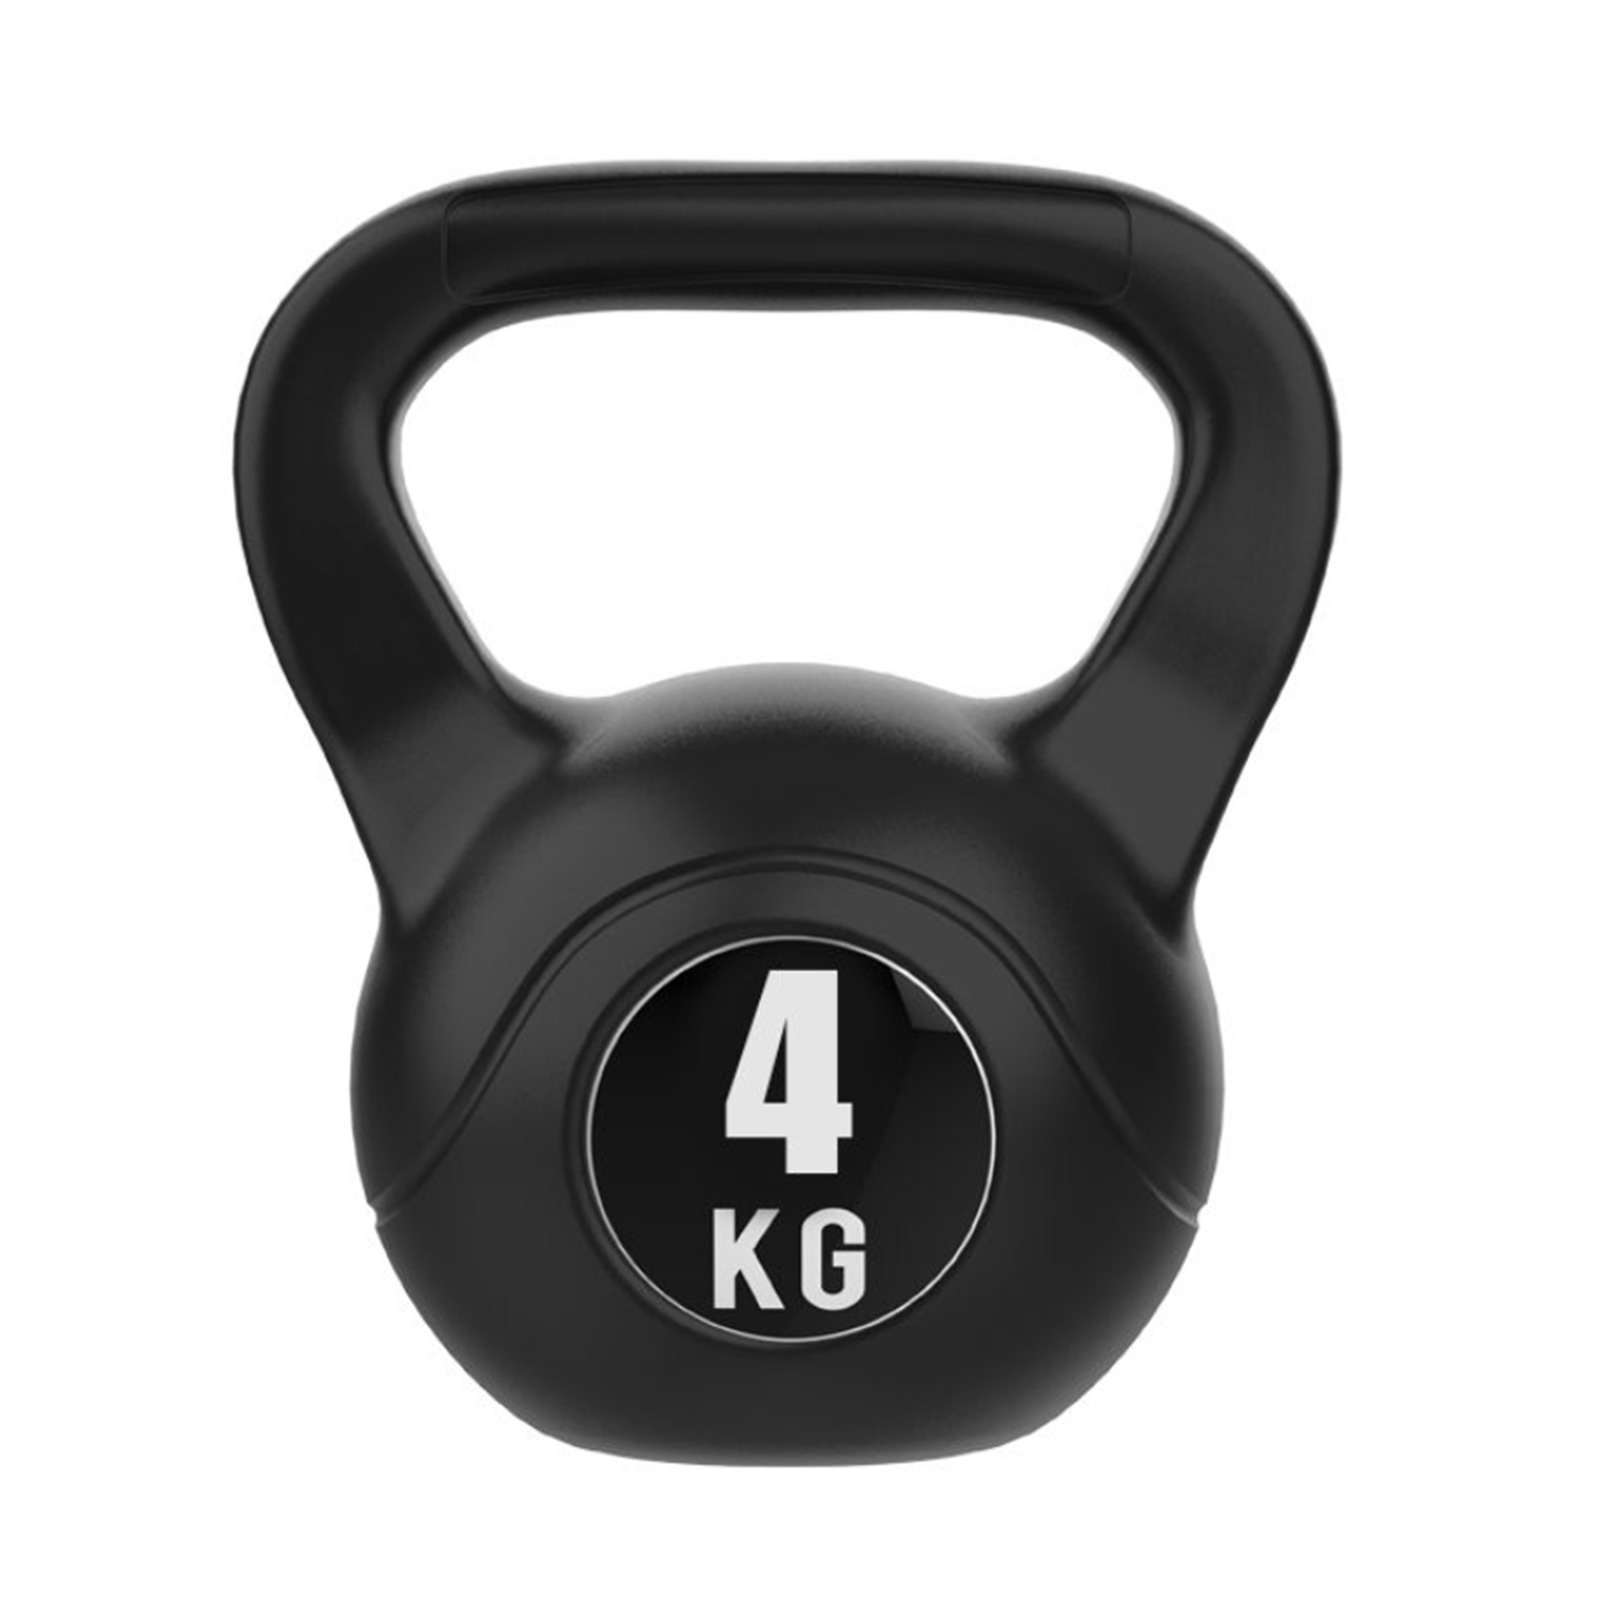 JMQ 4KG Kettlebell Kettle Bell Weight Exercise Home Gym Workout